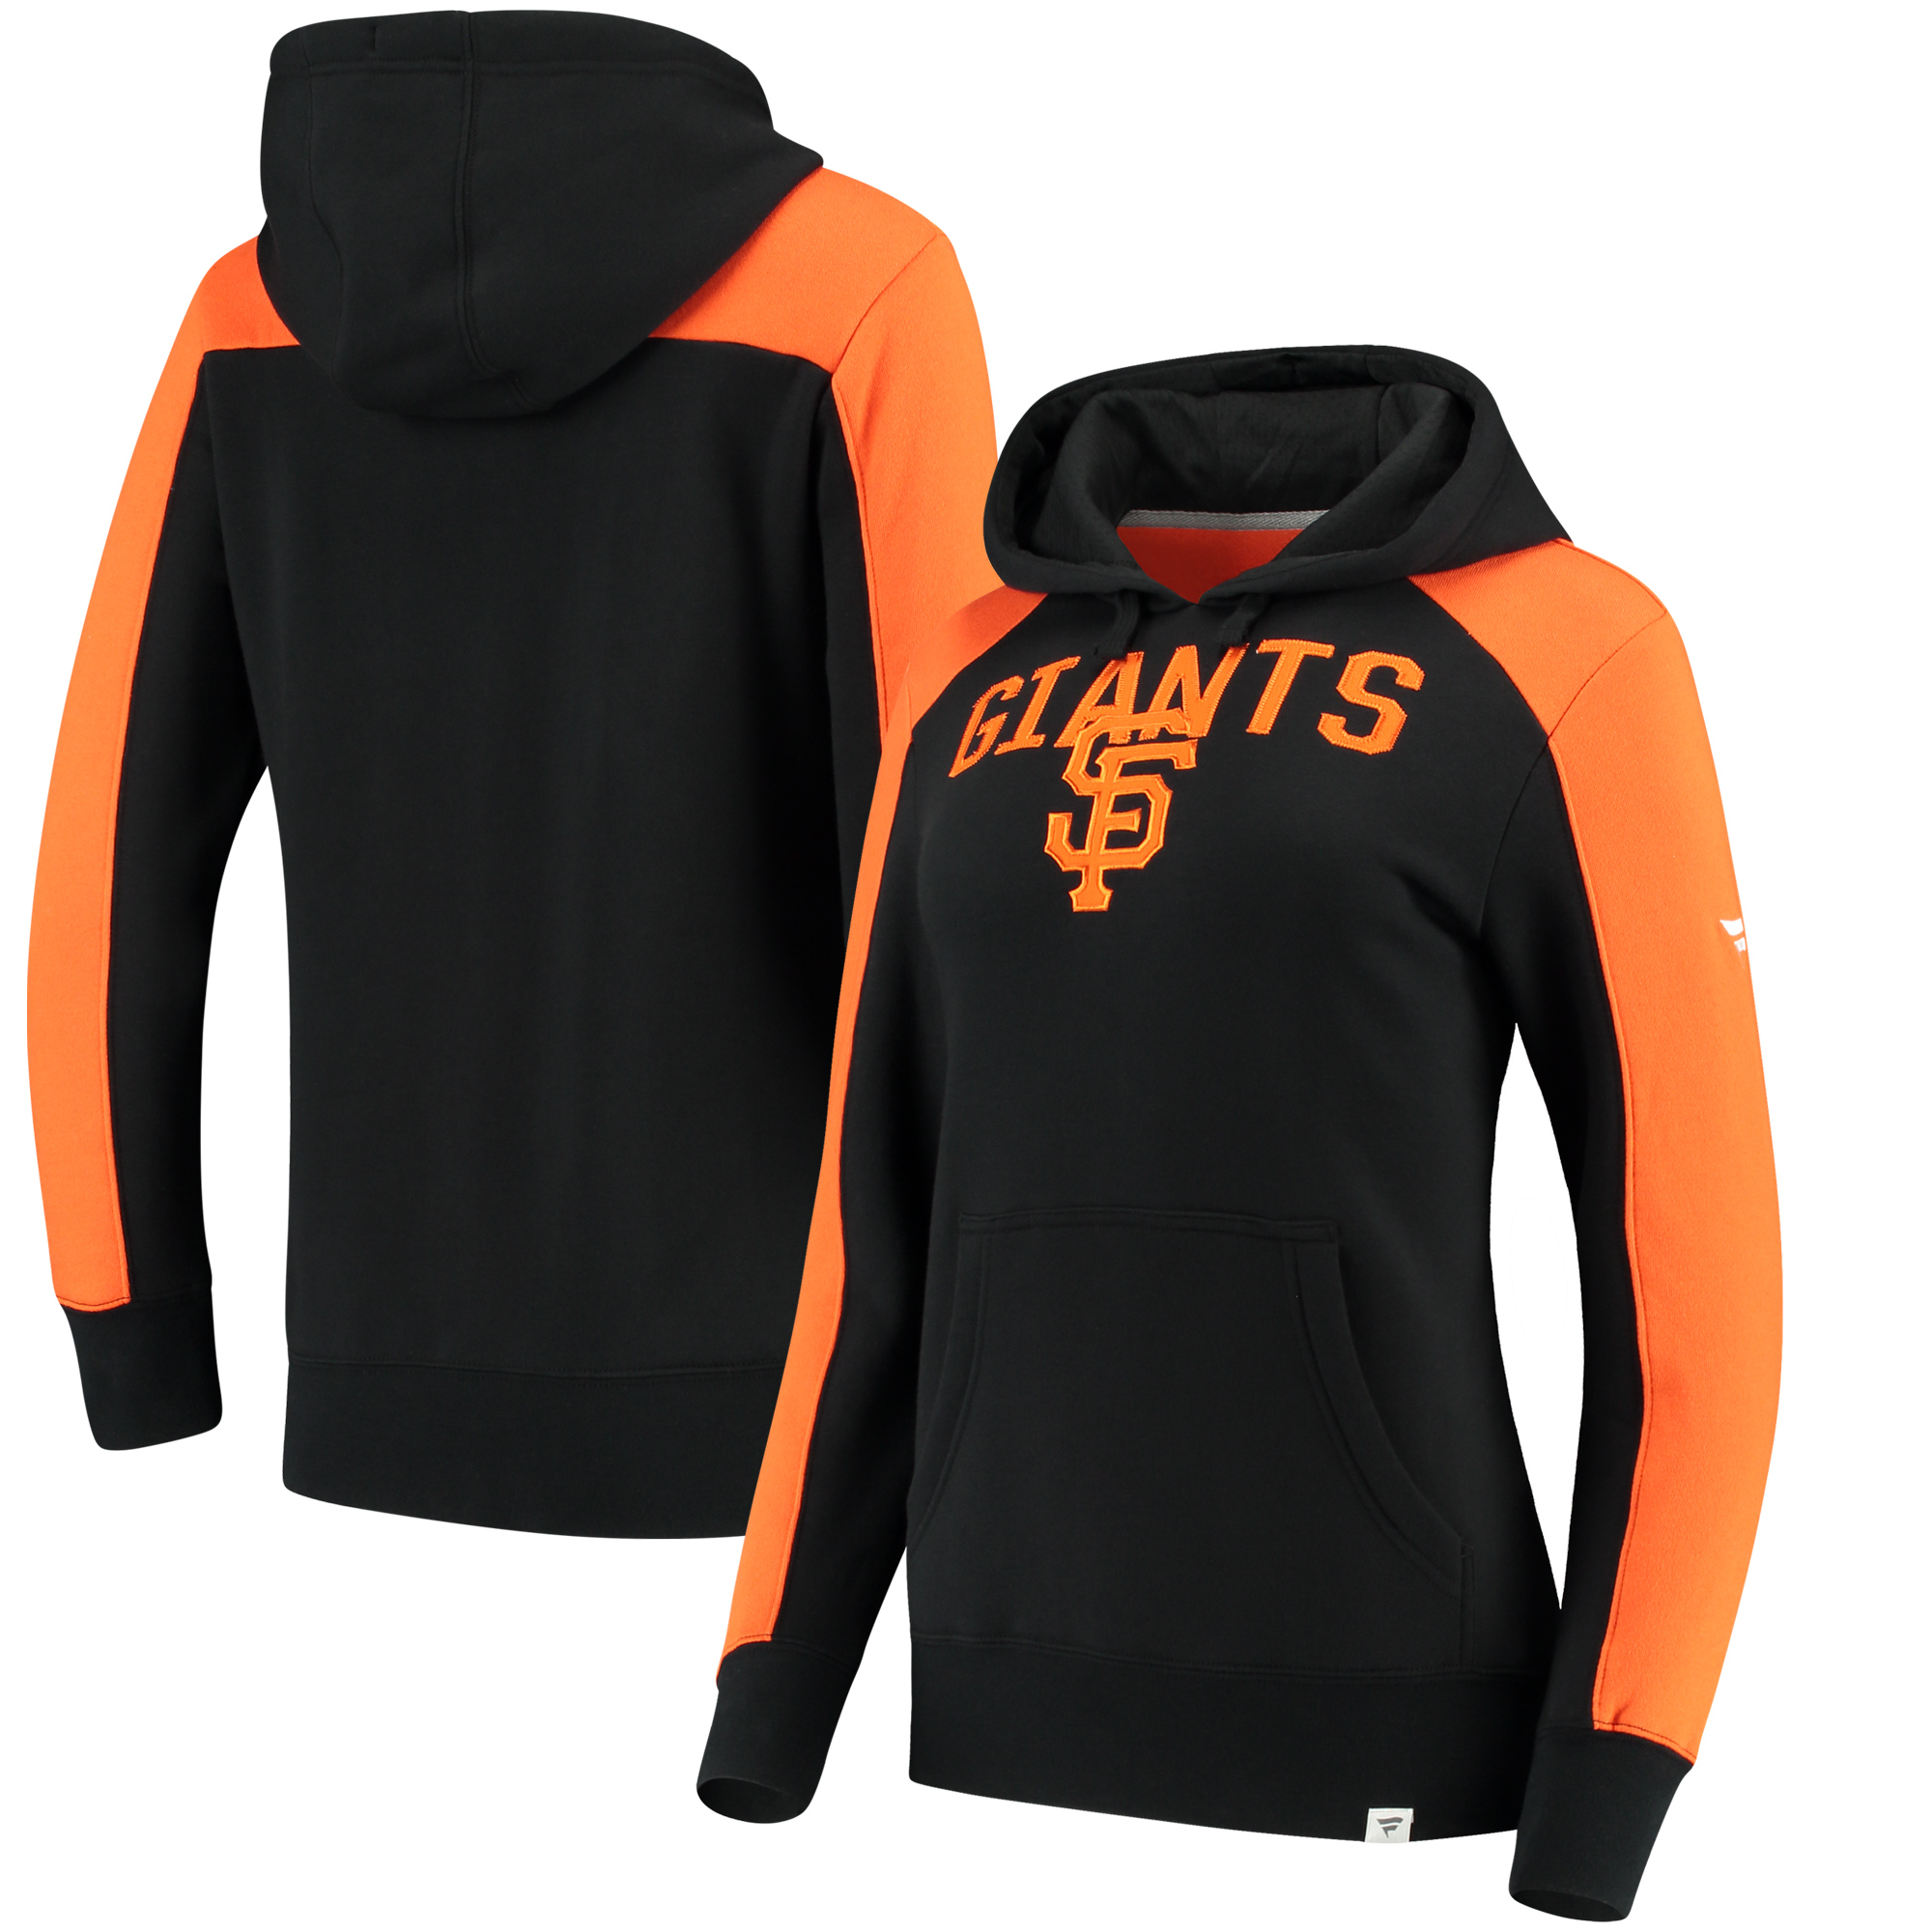 San Francisco Giants Fanatics Branded Women's Iconic Pullover Hoodie - Black/Orange